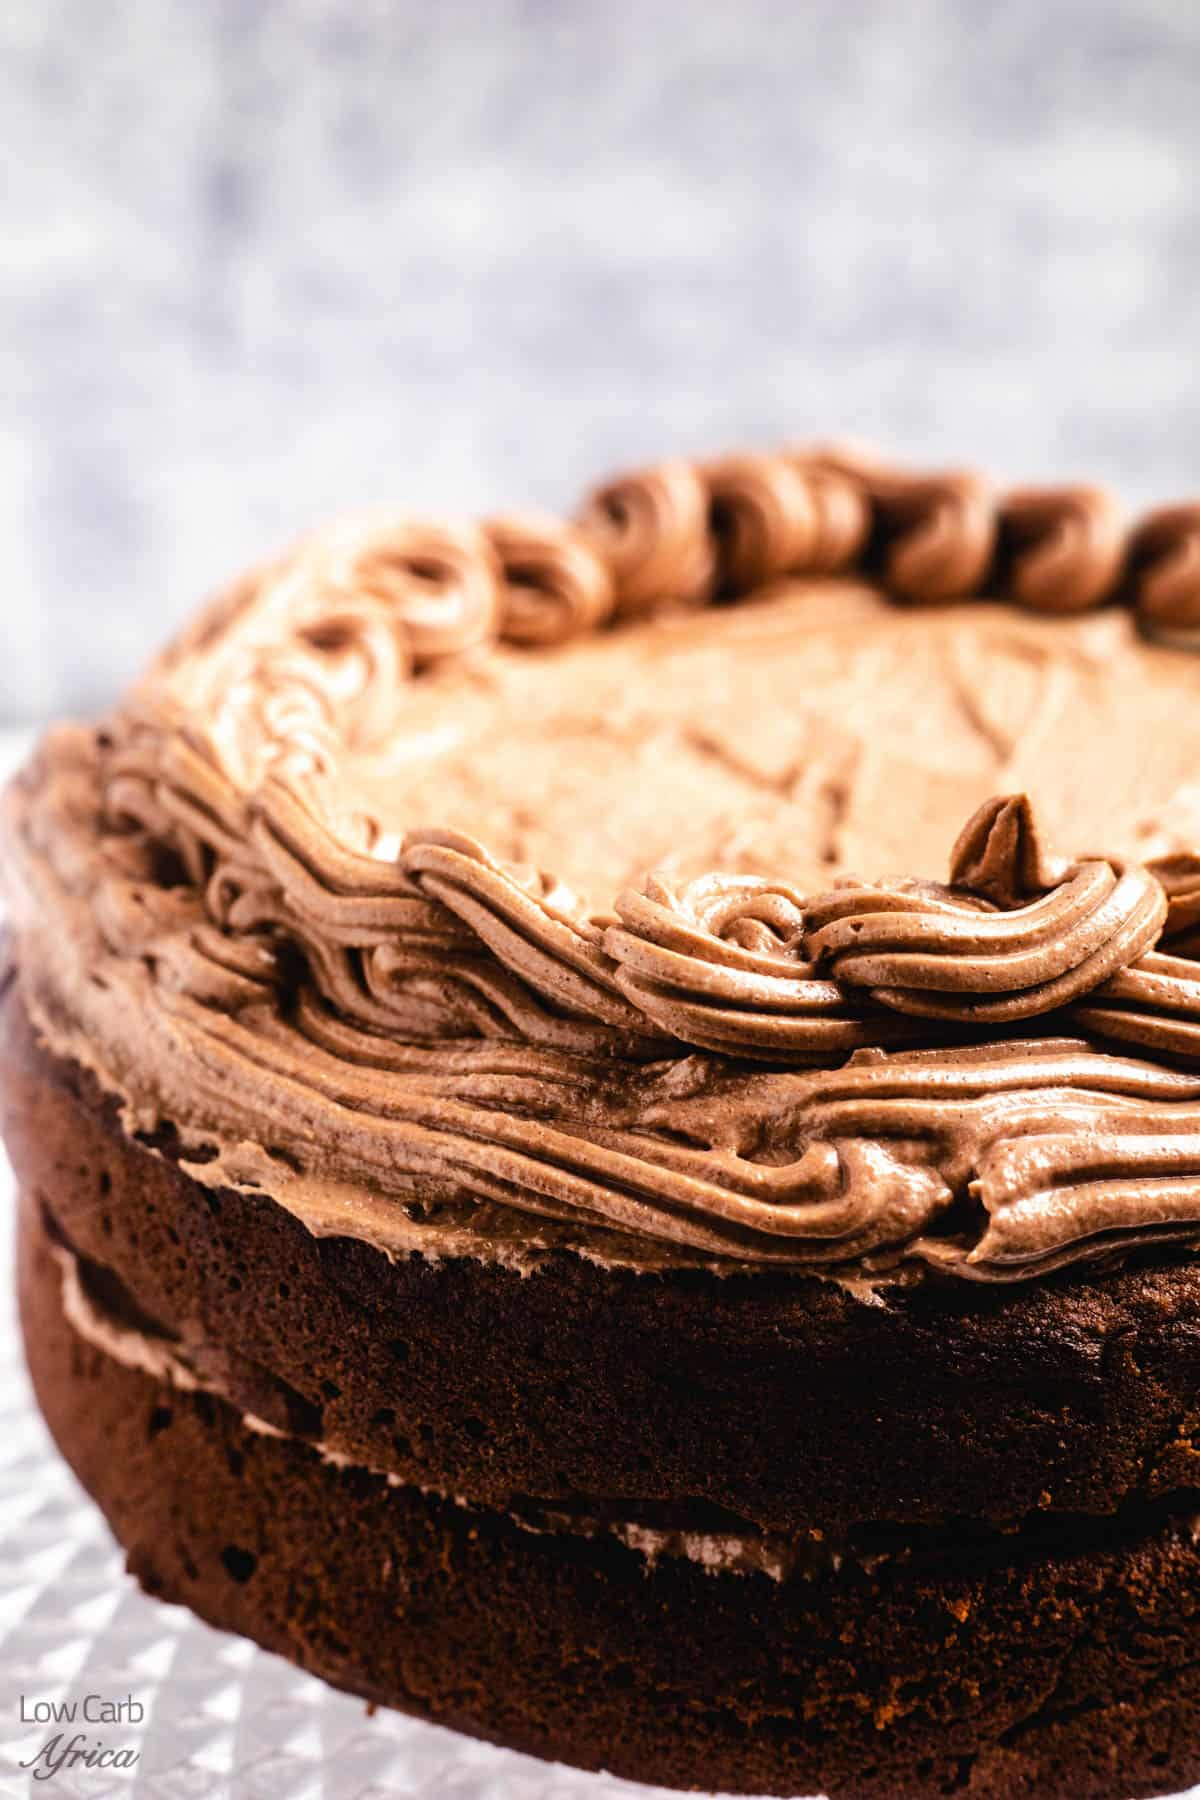 low carb and keto gluten-free chocolate cake